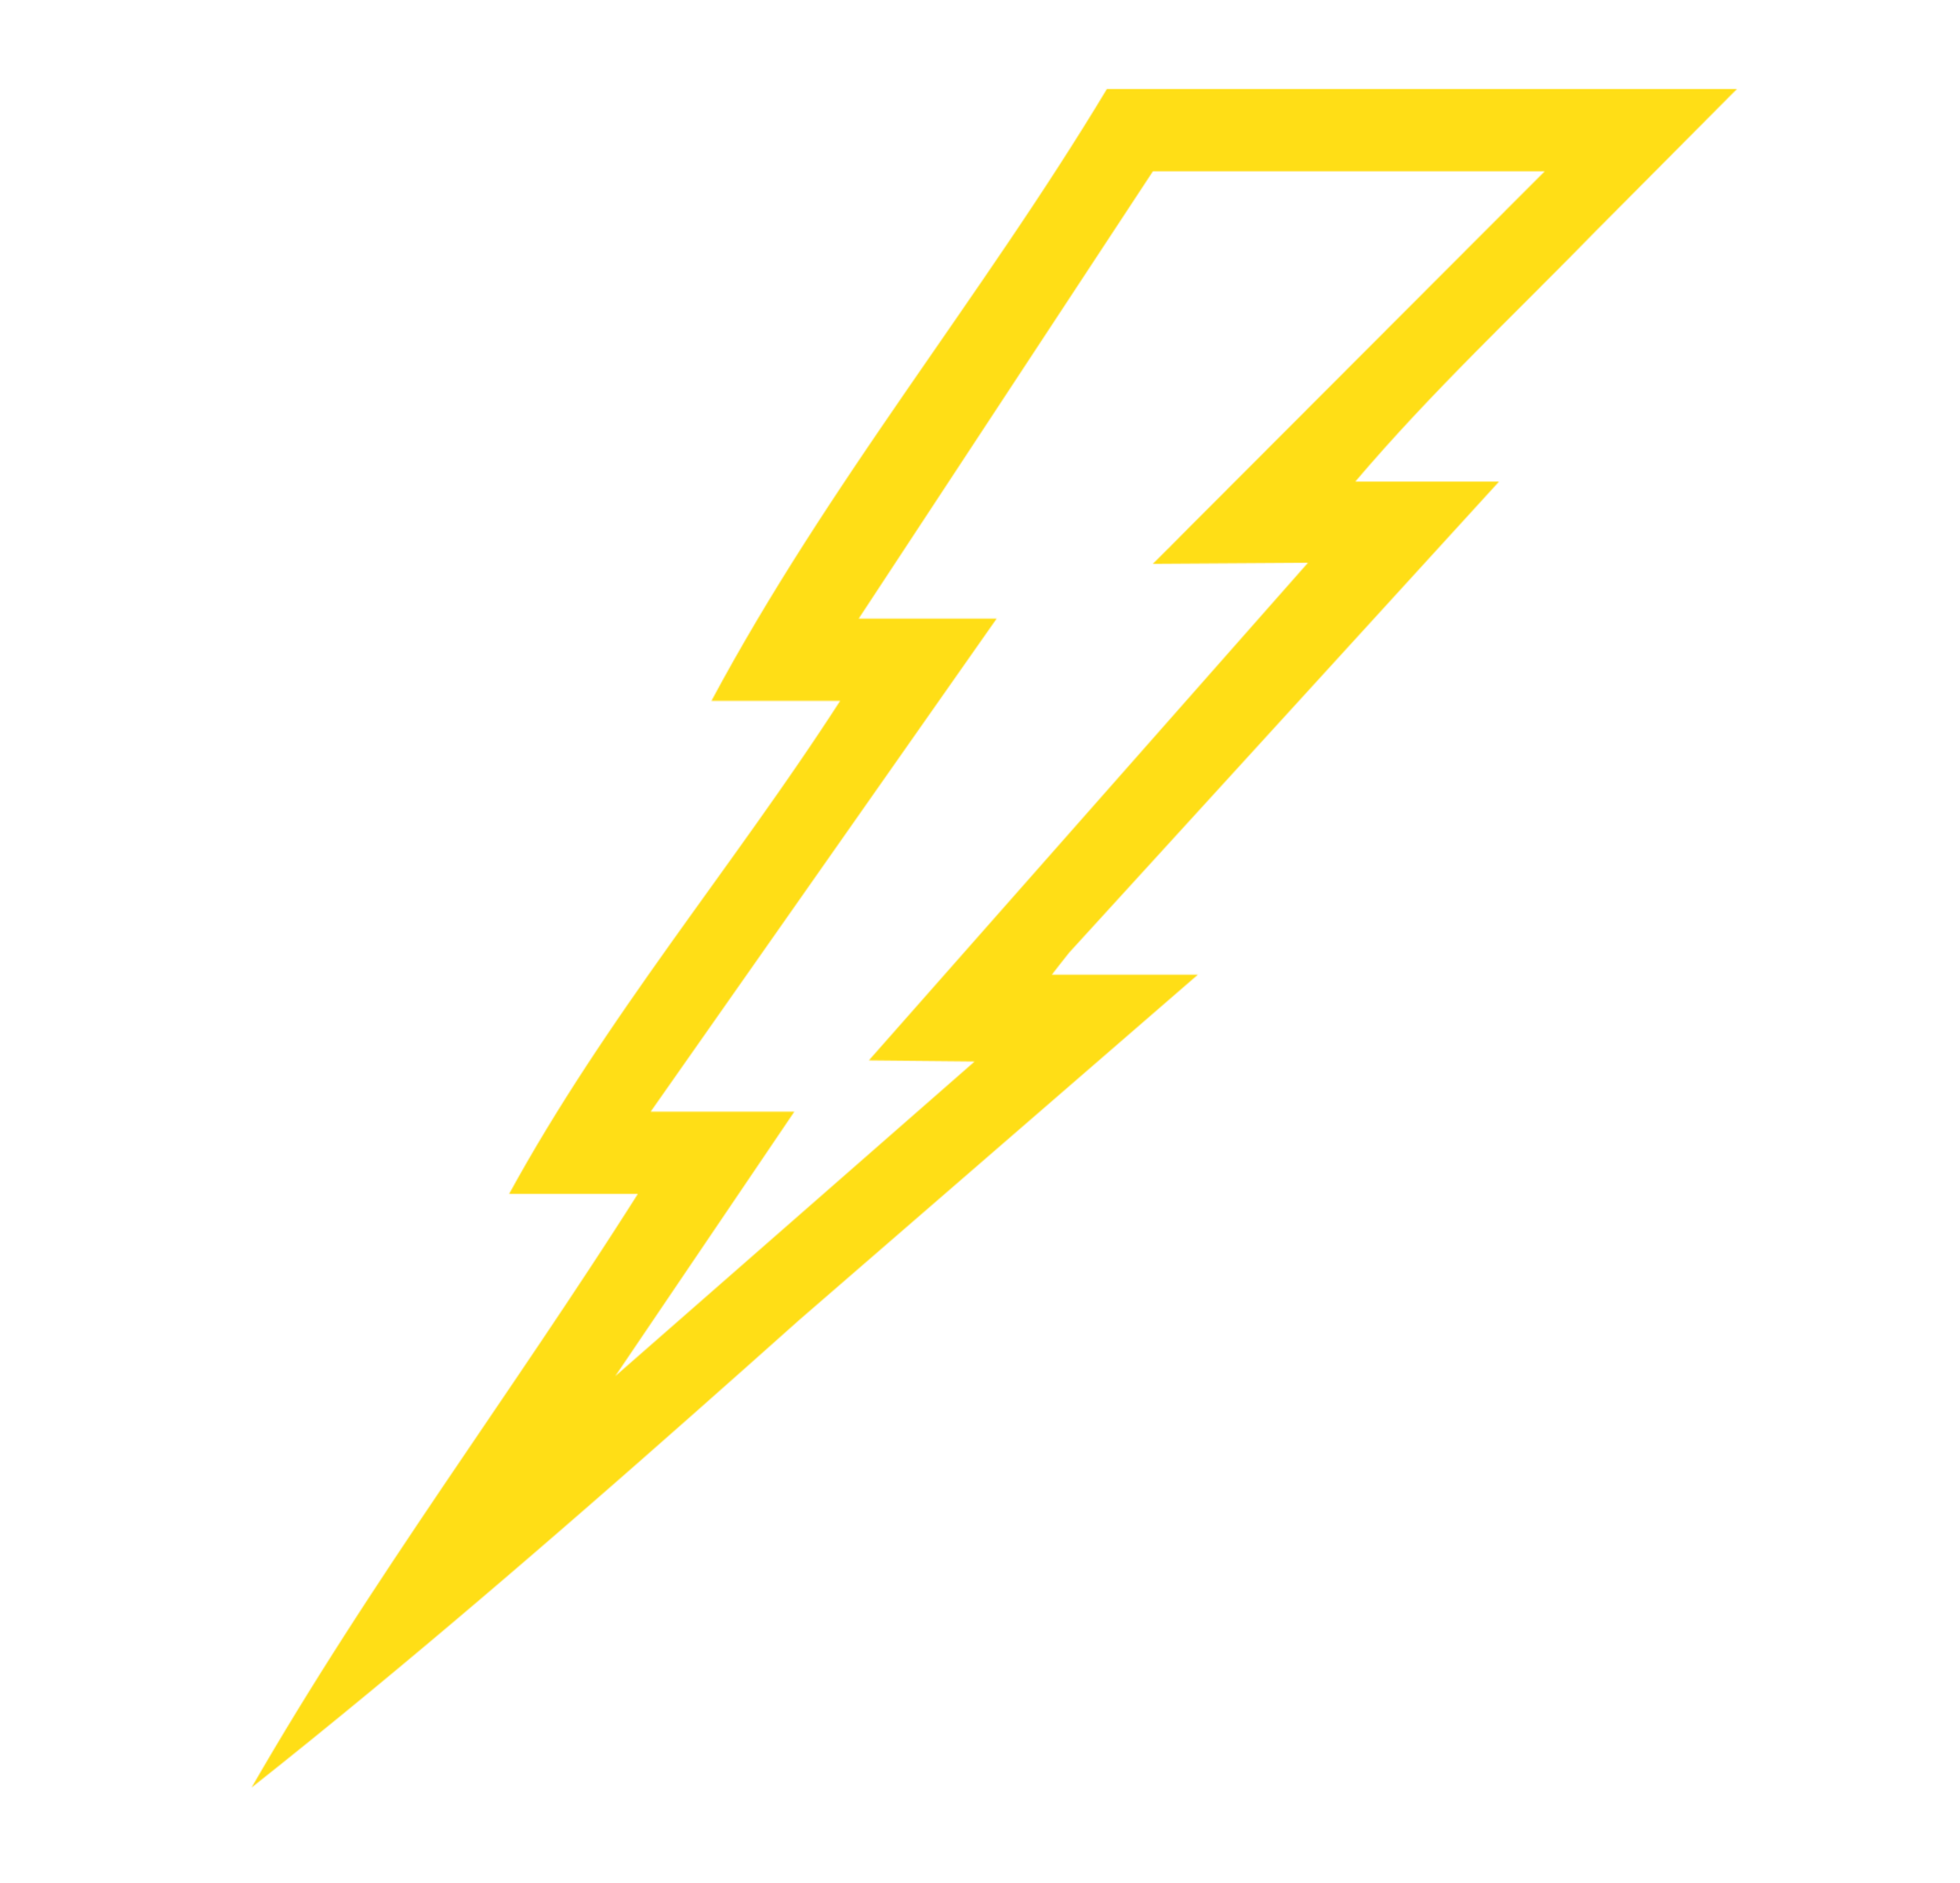 Lightning Bolt Bolt Clipart 7 Lighting B-Lightning bolt bolt clipart 7 lighting bolt french bathroom-6